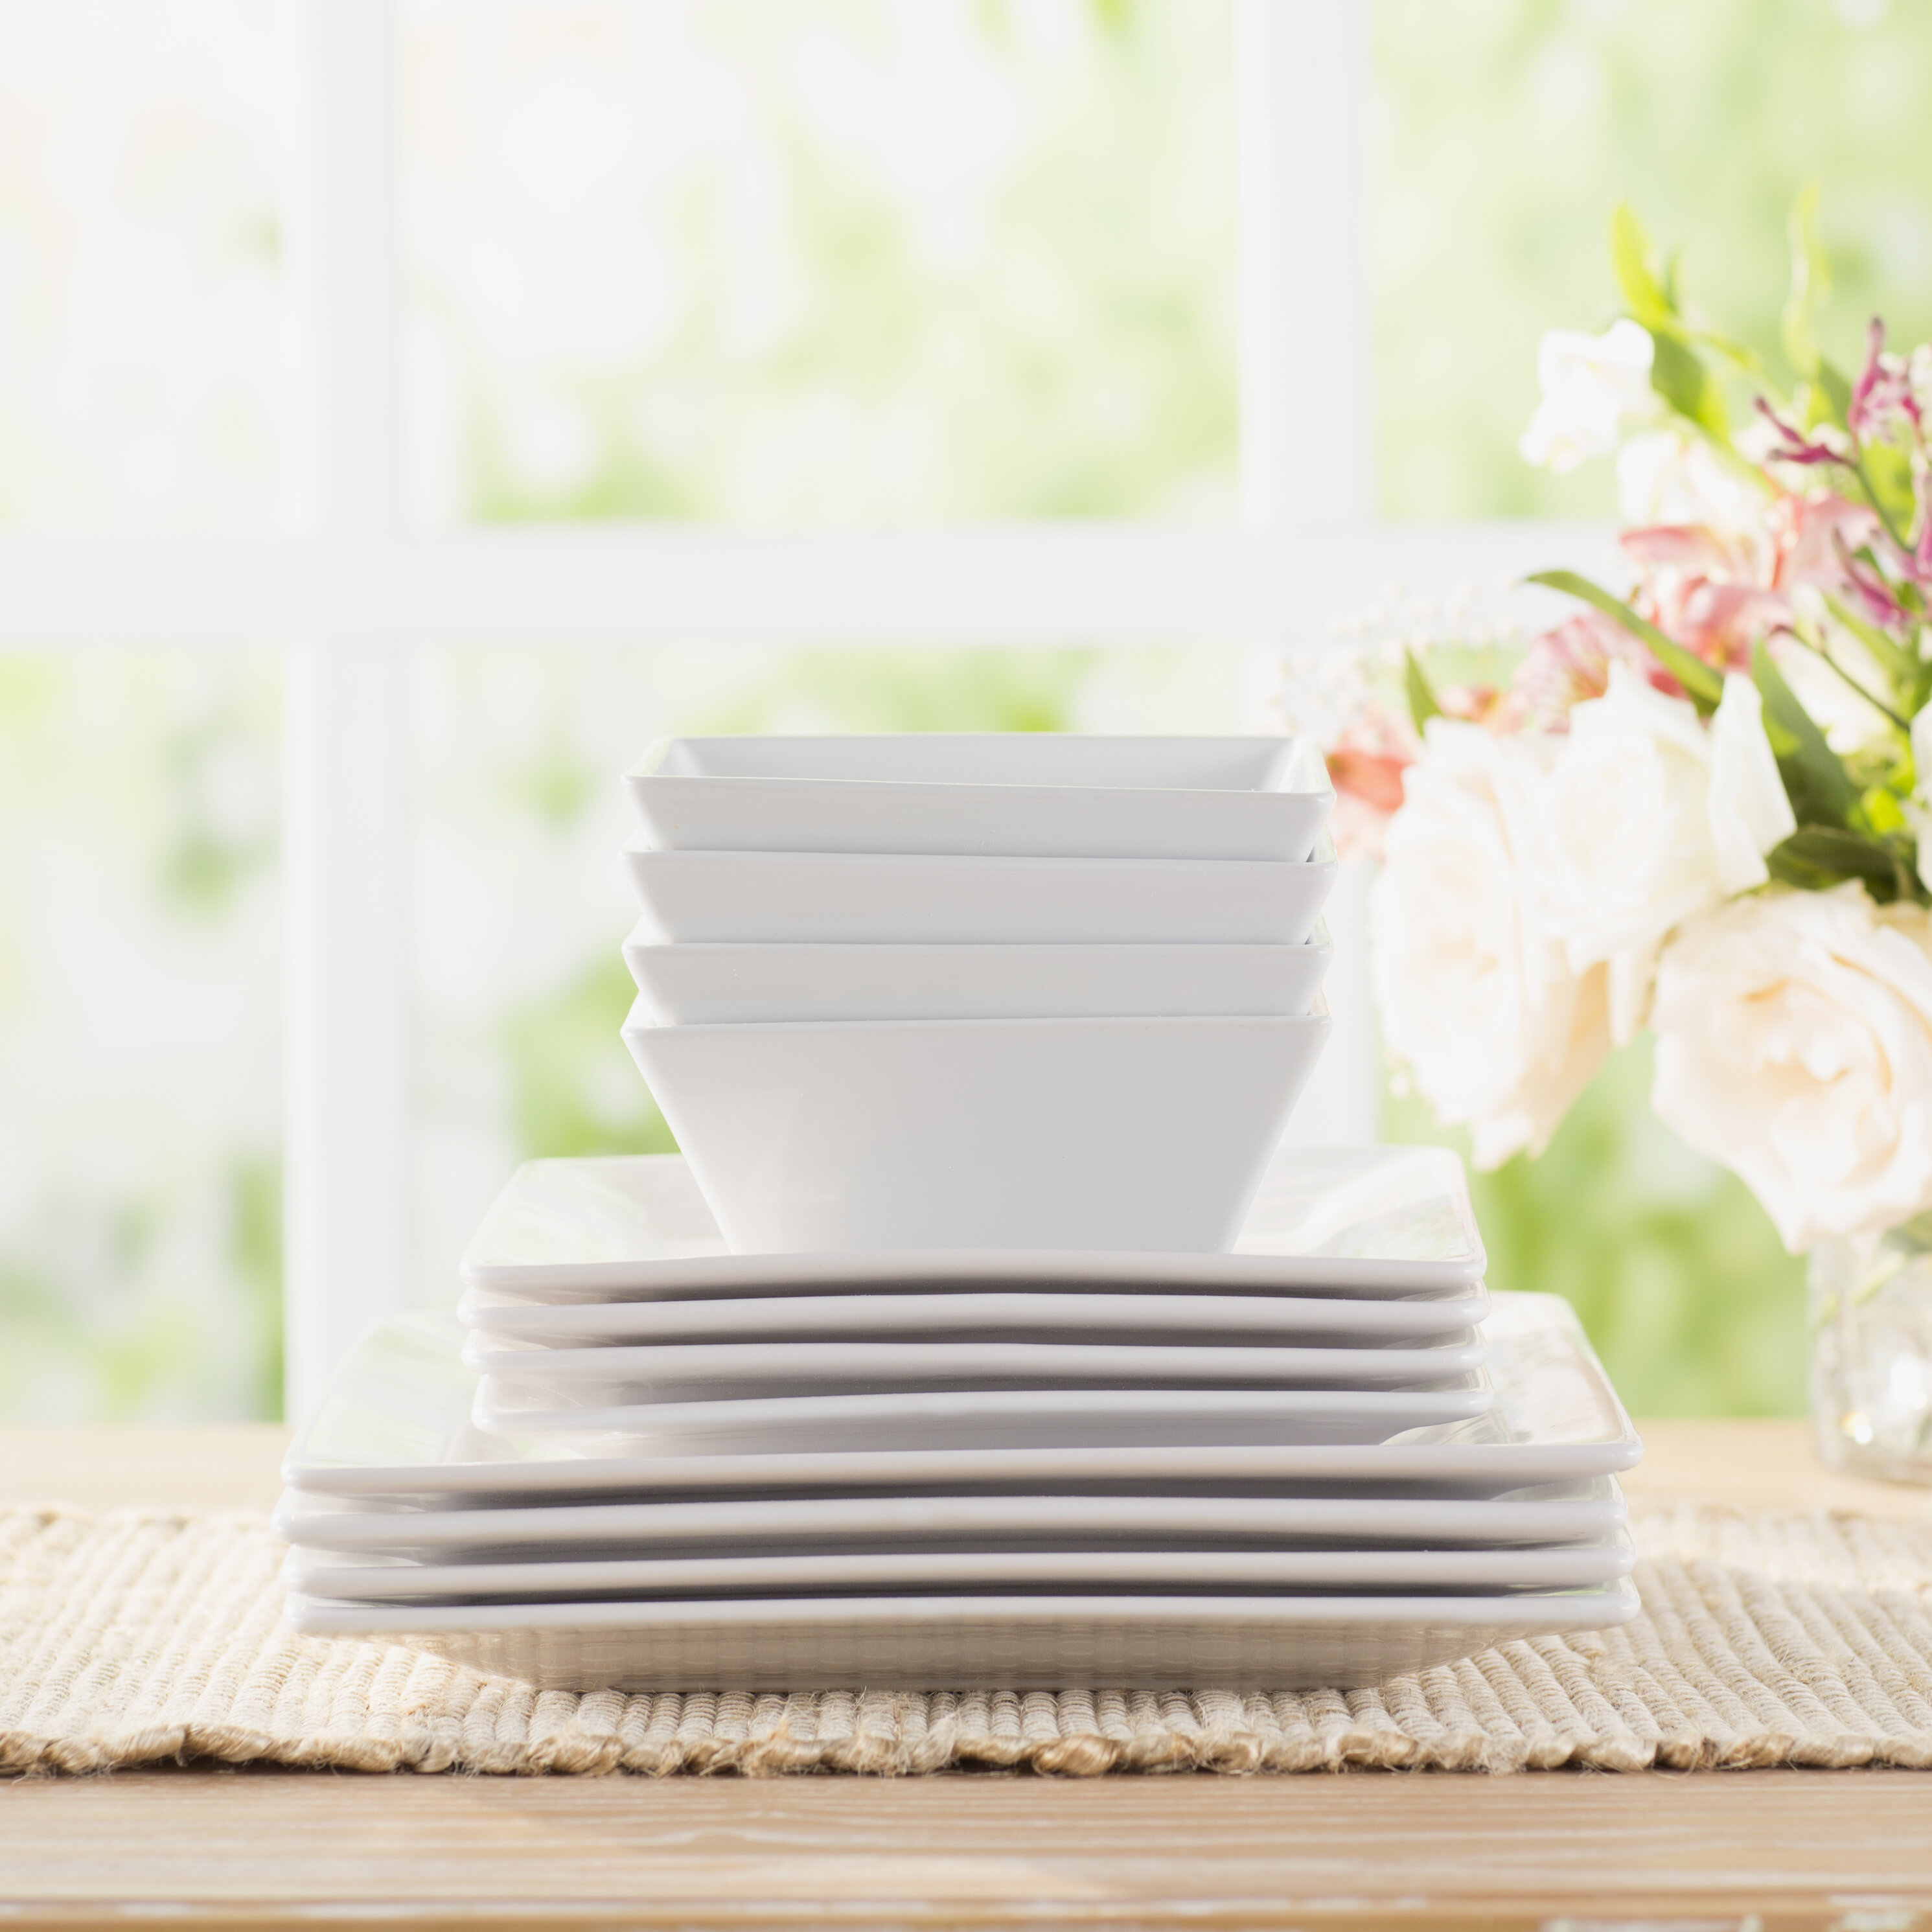 Wayfair Basics™ Wayfair Basics 12 Piece Square Dinnerware Set Service for 4 u0026 Reviews | Wayfair  sc 1 st  Wayfair & Wayfair Basics™ Wayfair Basics 12 Piece Square Dinnerware Set ...